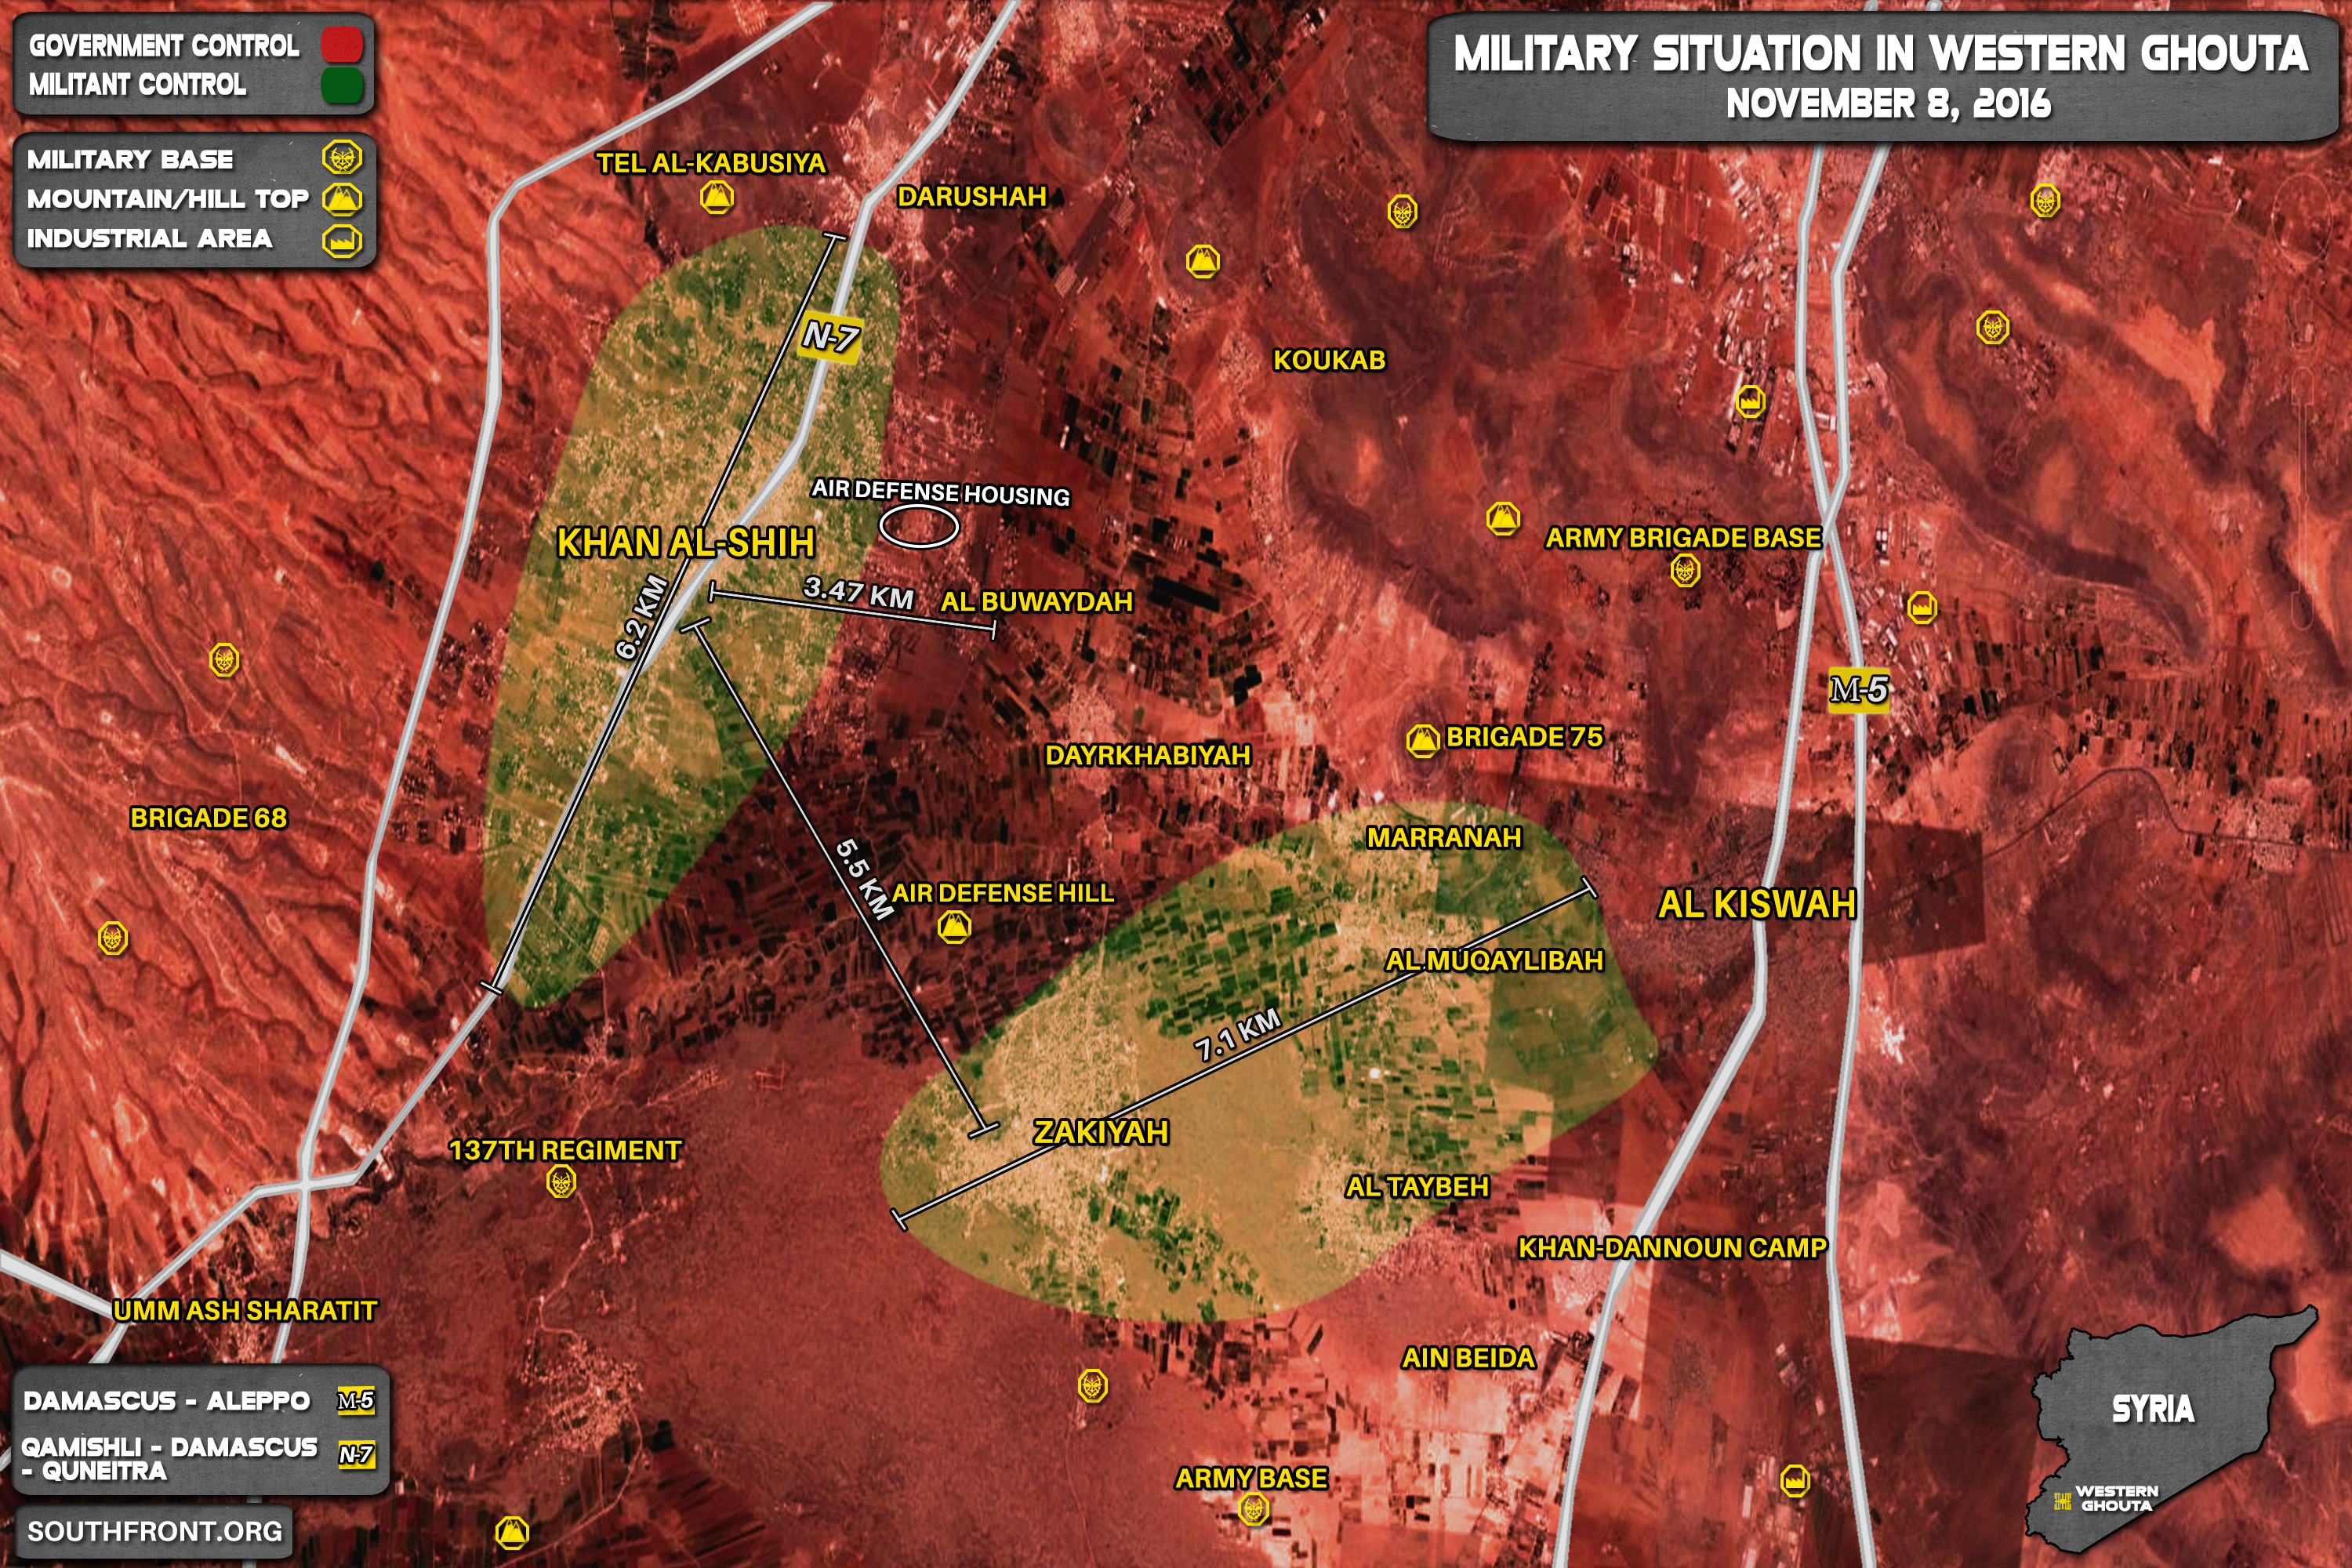 The 4th Armoured Division Of The Syrian Arab Army: History And Capabilities